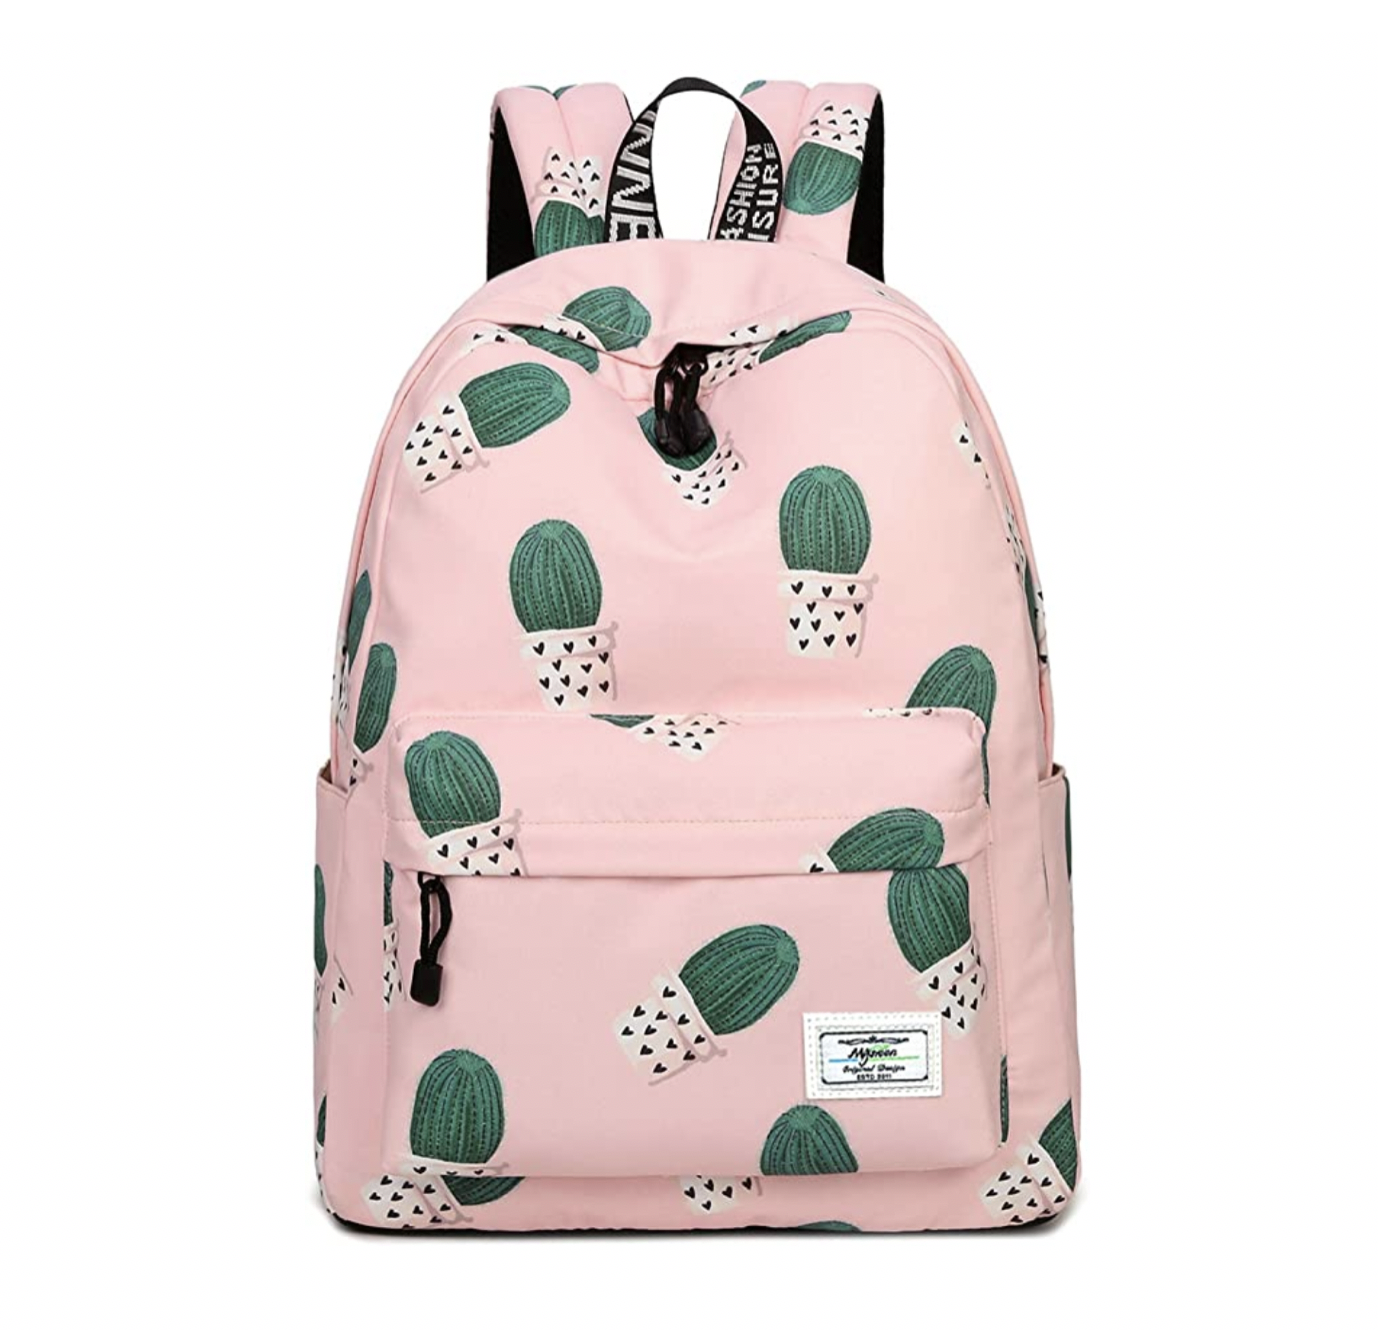 BUNNY COOL BACK PACK PERFECT FOR SCHOOL BAGBASE BACK TO SCHOOL RUCKSACK BAG